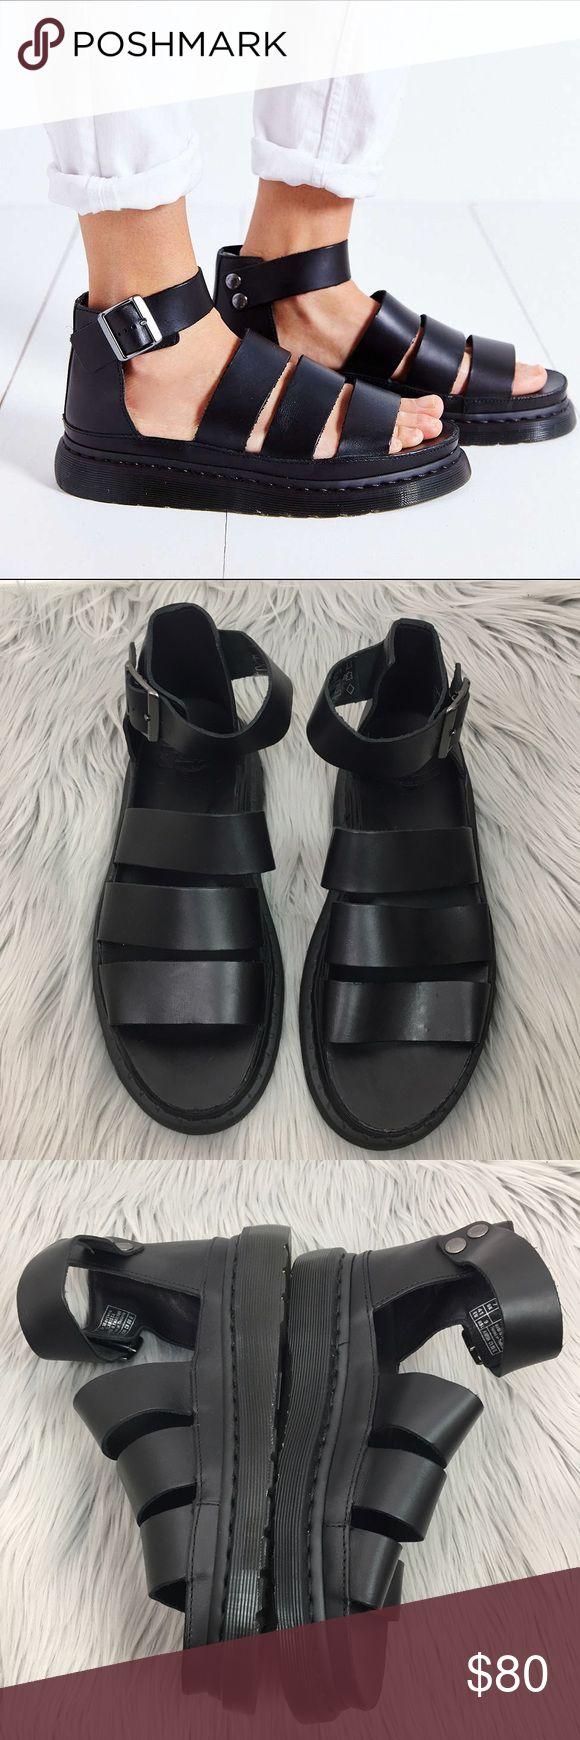 NEW Dr. Martens black leather Clarissa sandals Brand new never worn. Brand marked to prevent in store returns. This colorway was sold at urban outfitters! Dr. Martens Shoes Sandals